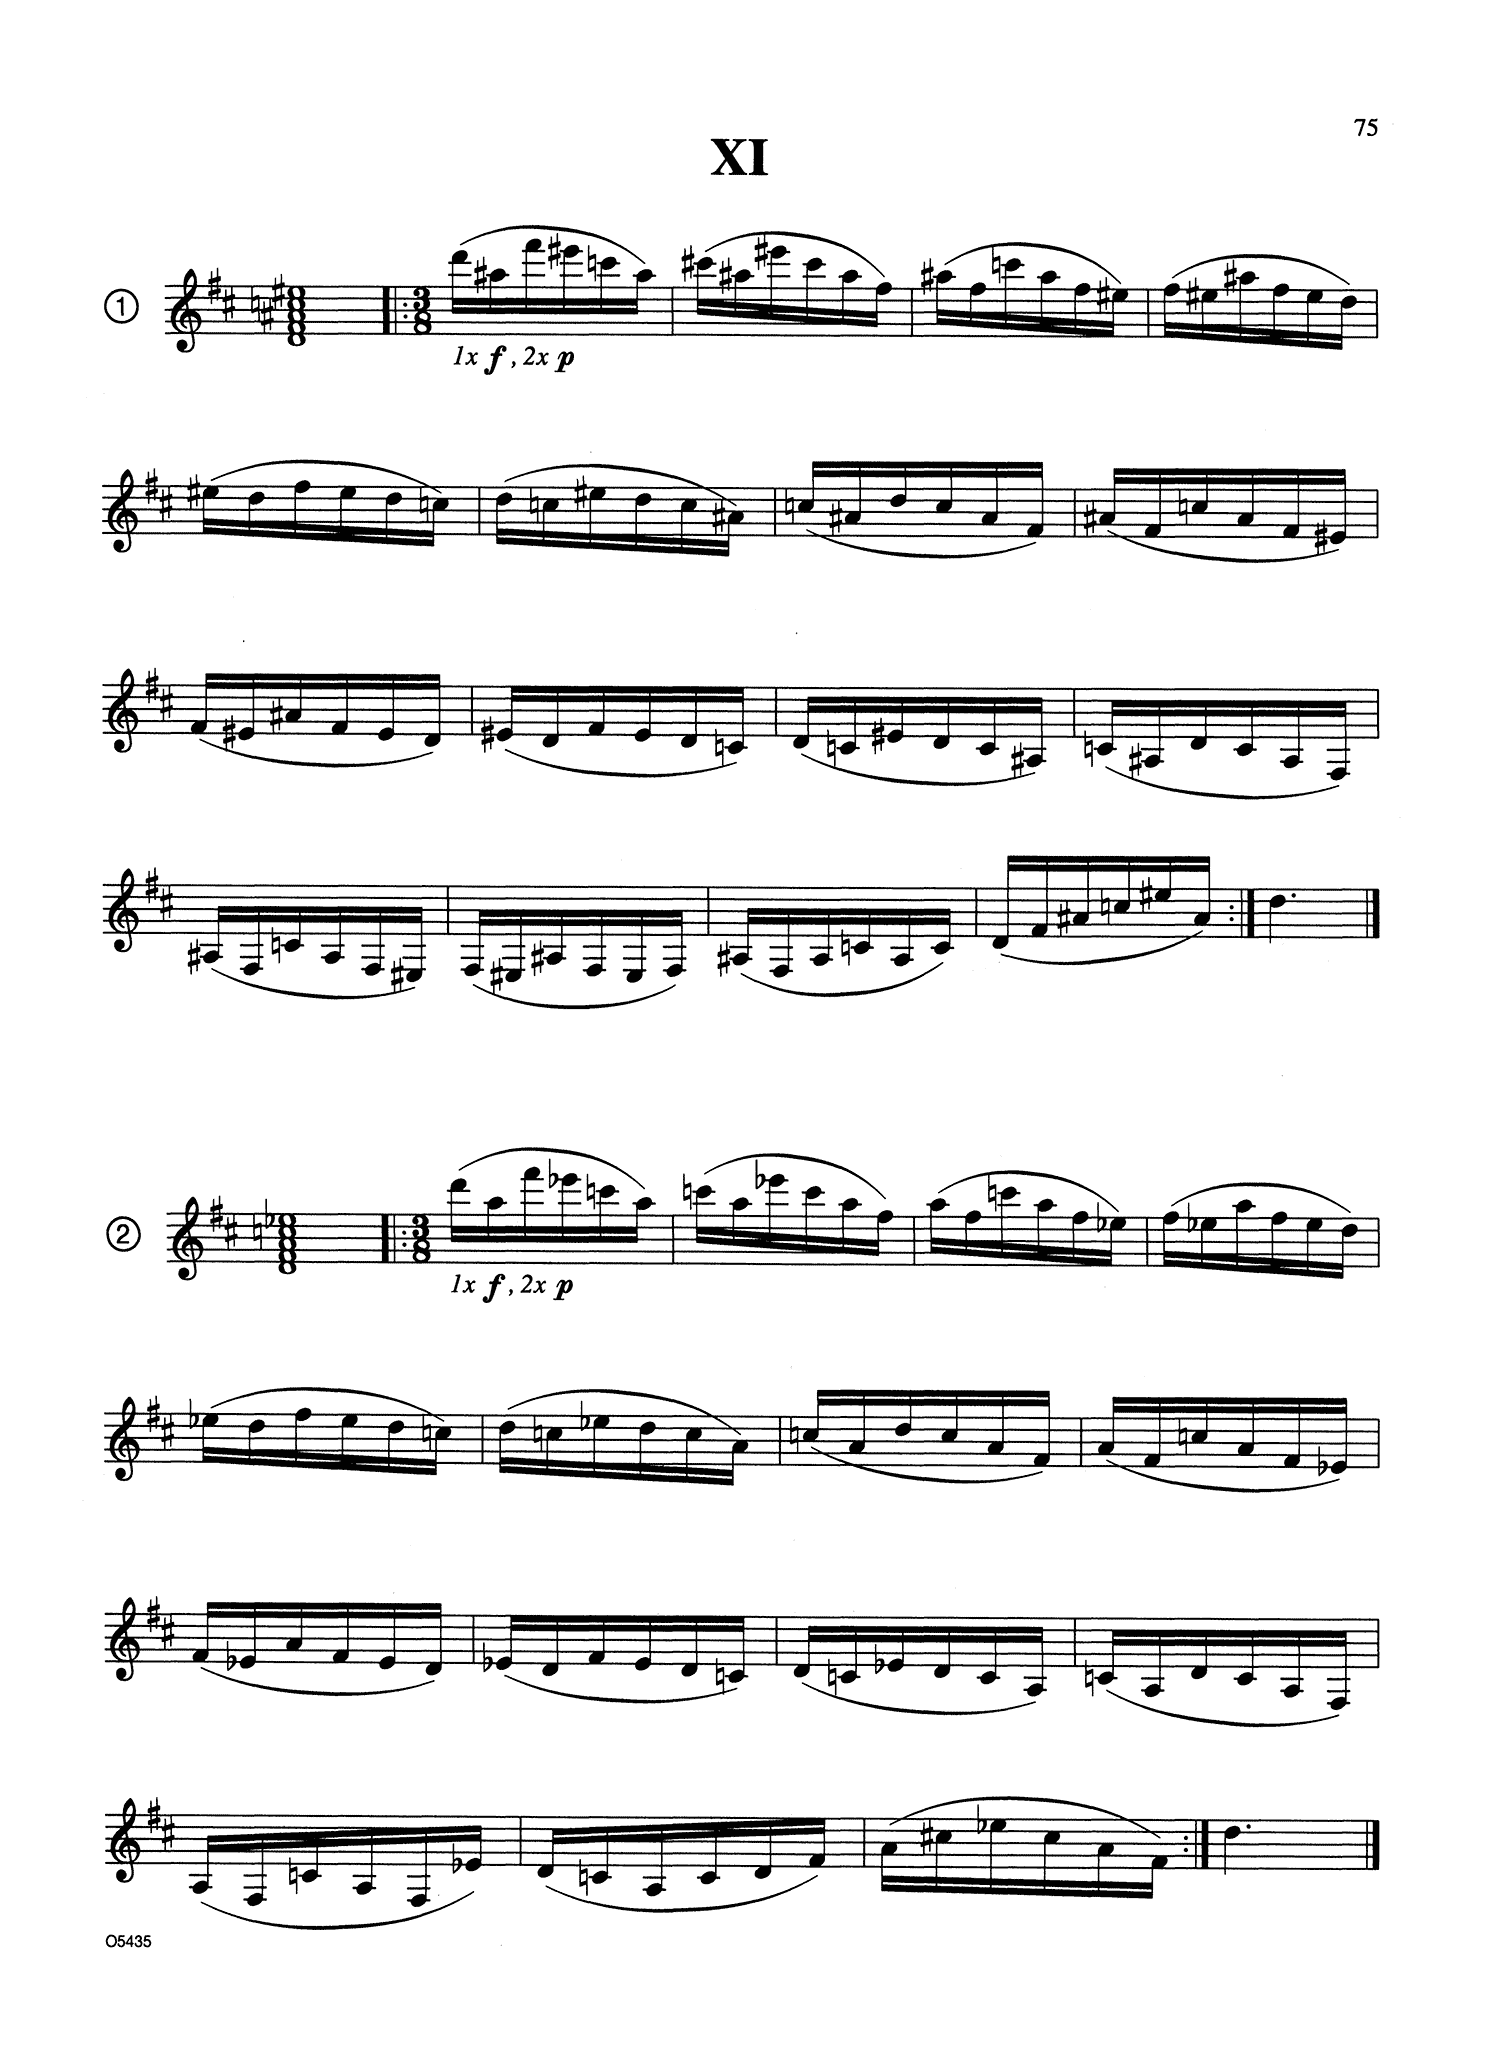 Advanced Contemporary Chordal Sequences for Clarinet Page 75